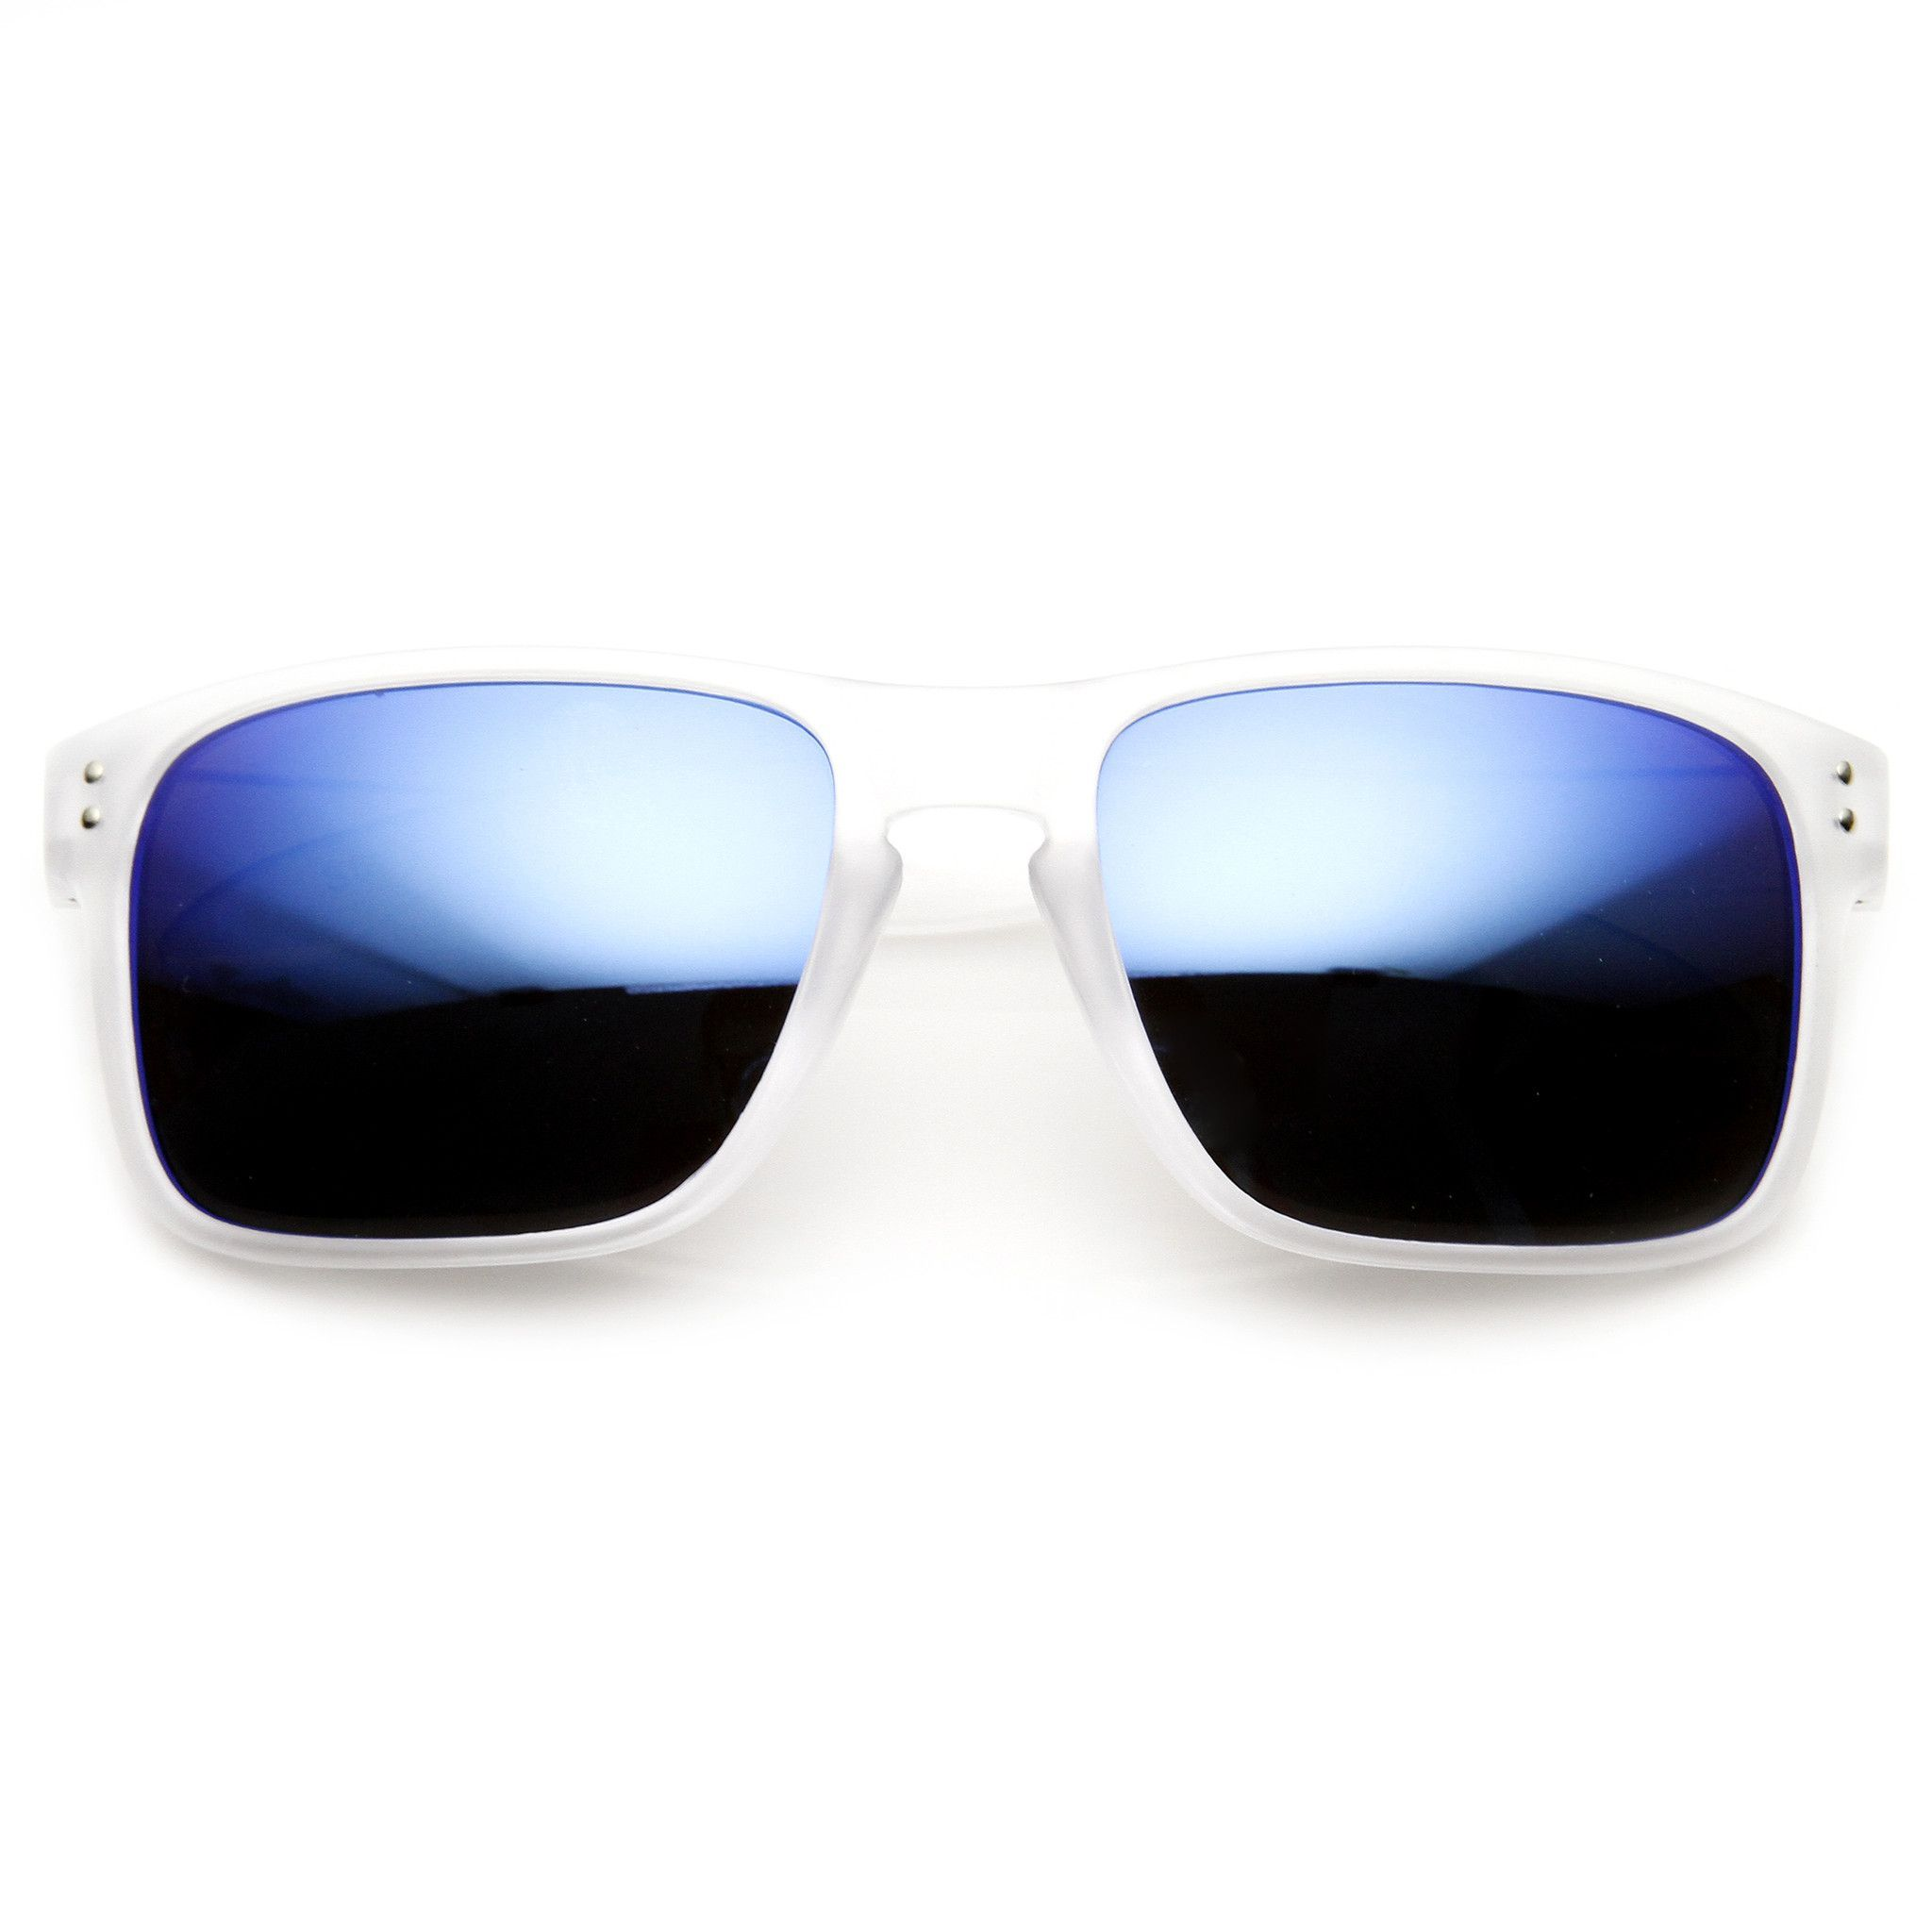 e4f9cf16335 Men s Action Sports Frosted Color Aviator Sunglasses With Flash Revo Lens